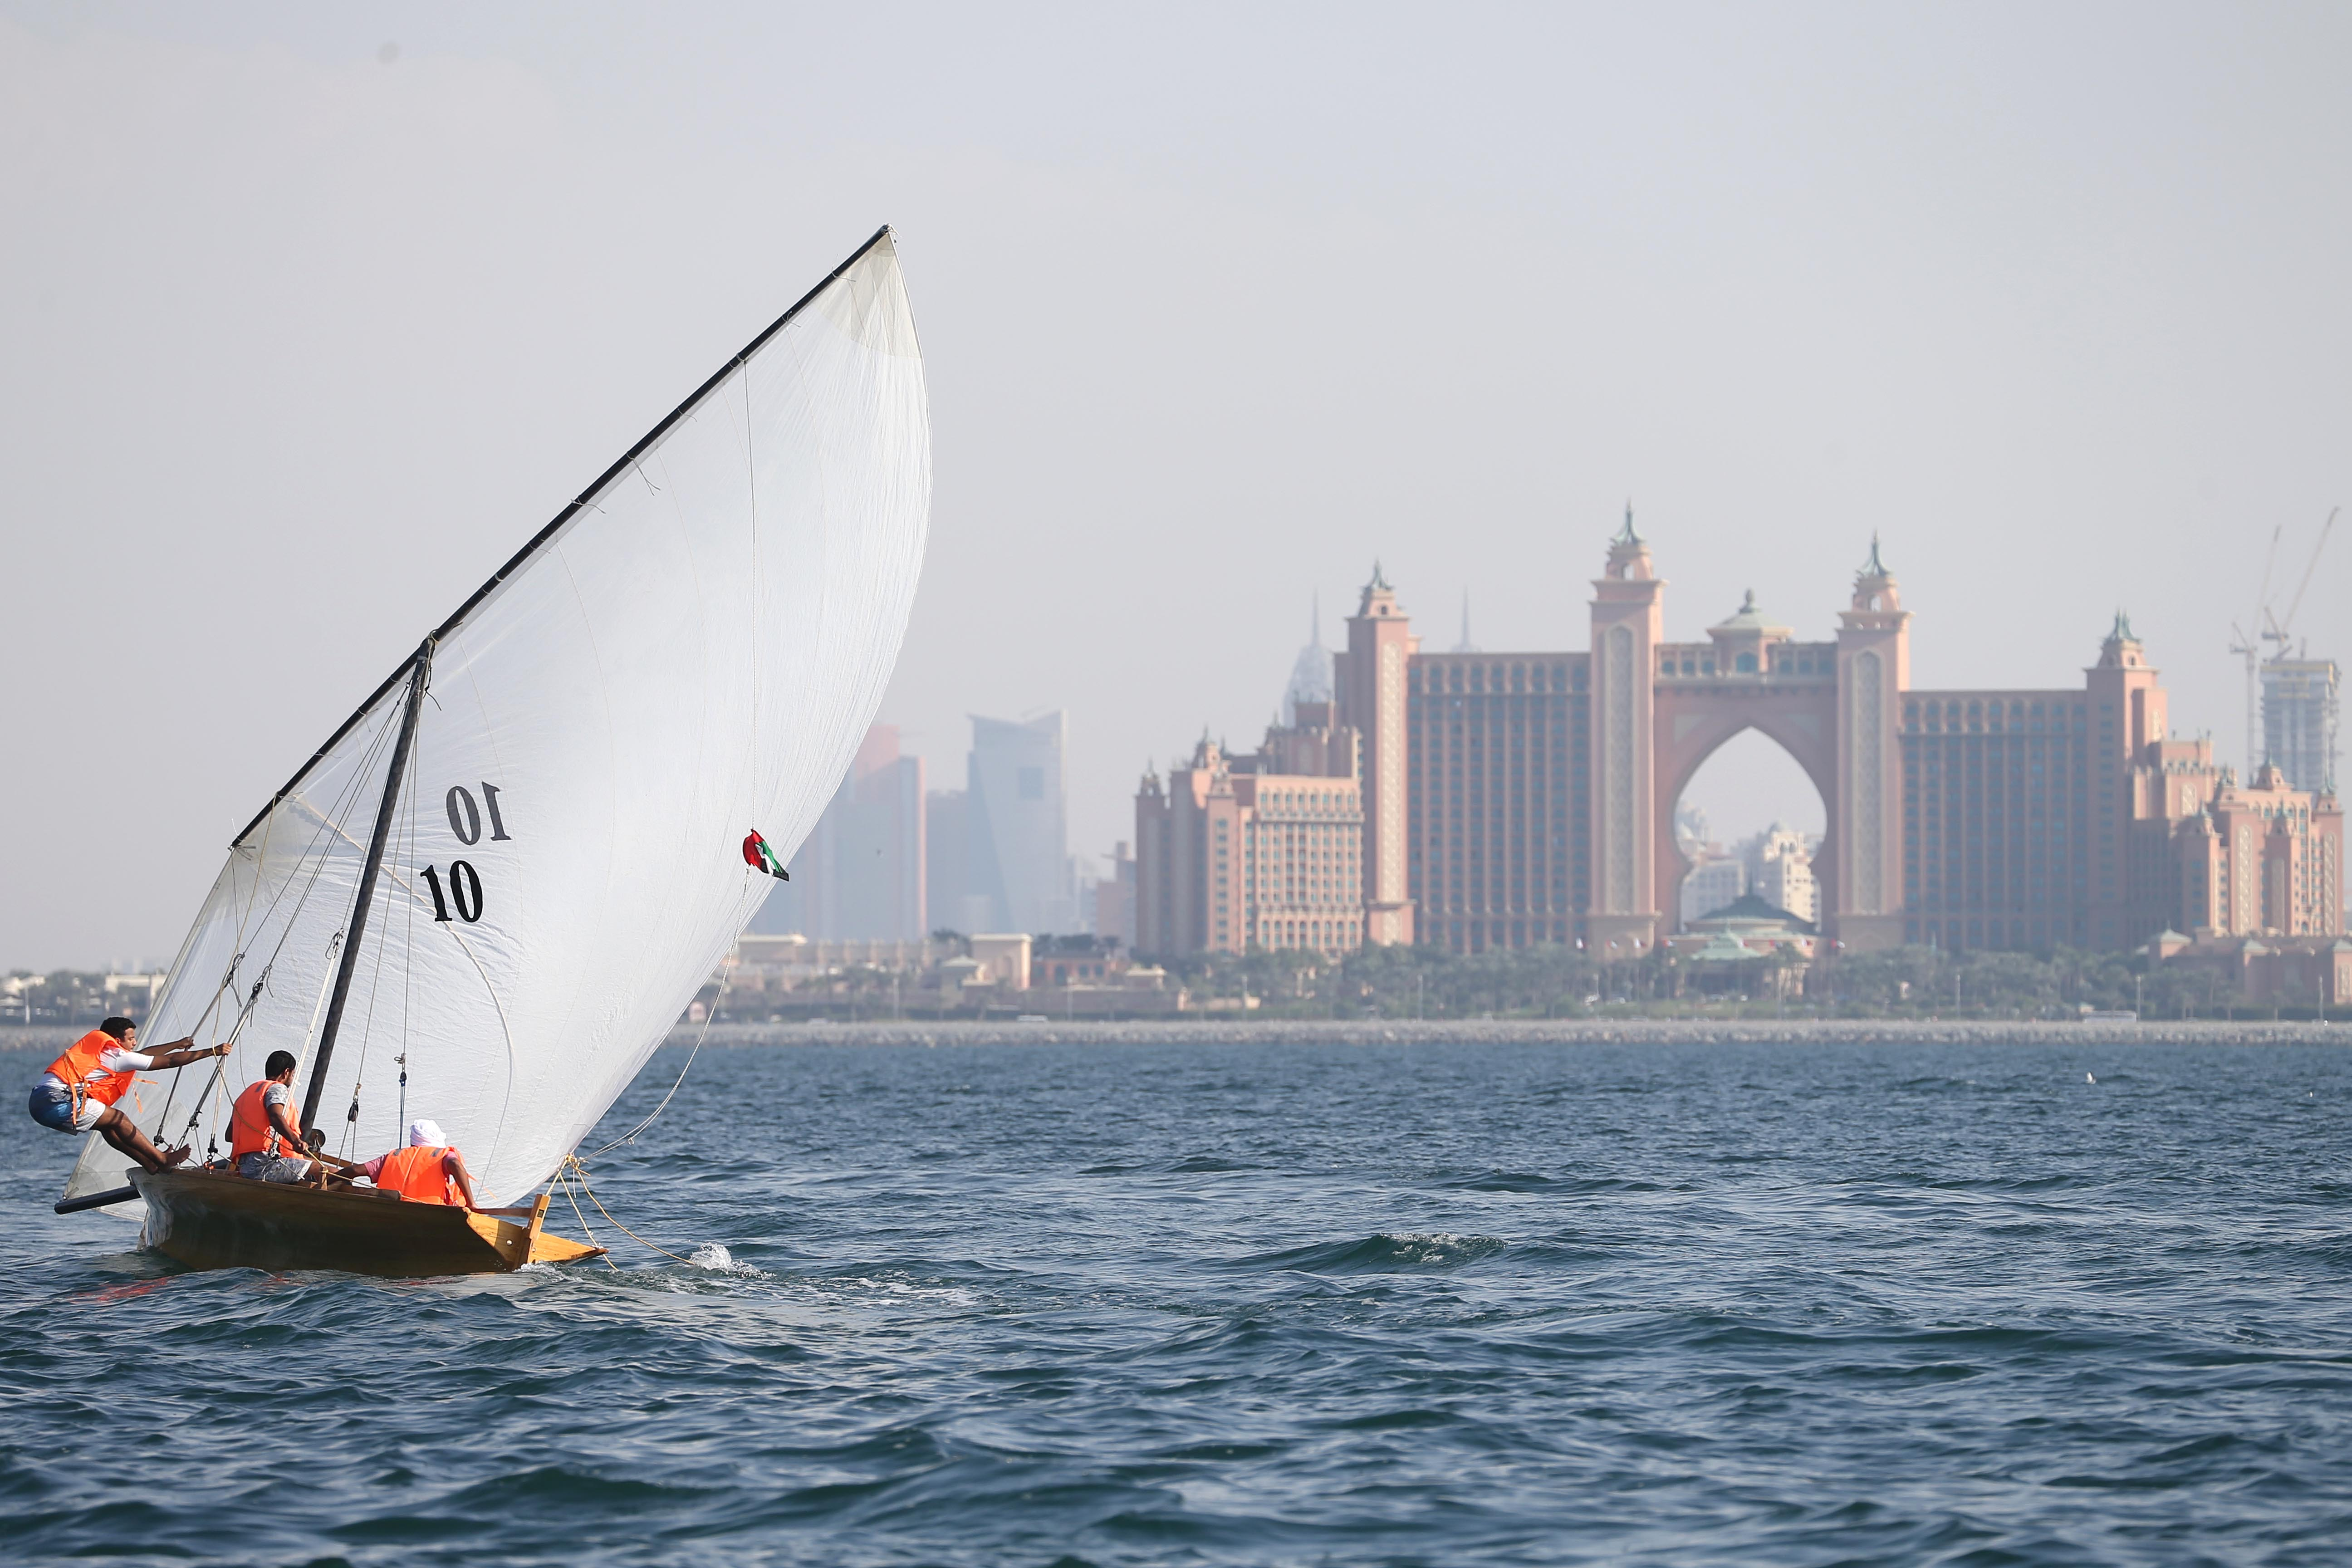 22ft Dubai Traditional Dhow Sailing Race in Jumeirah today